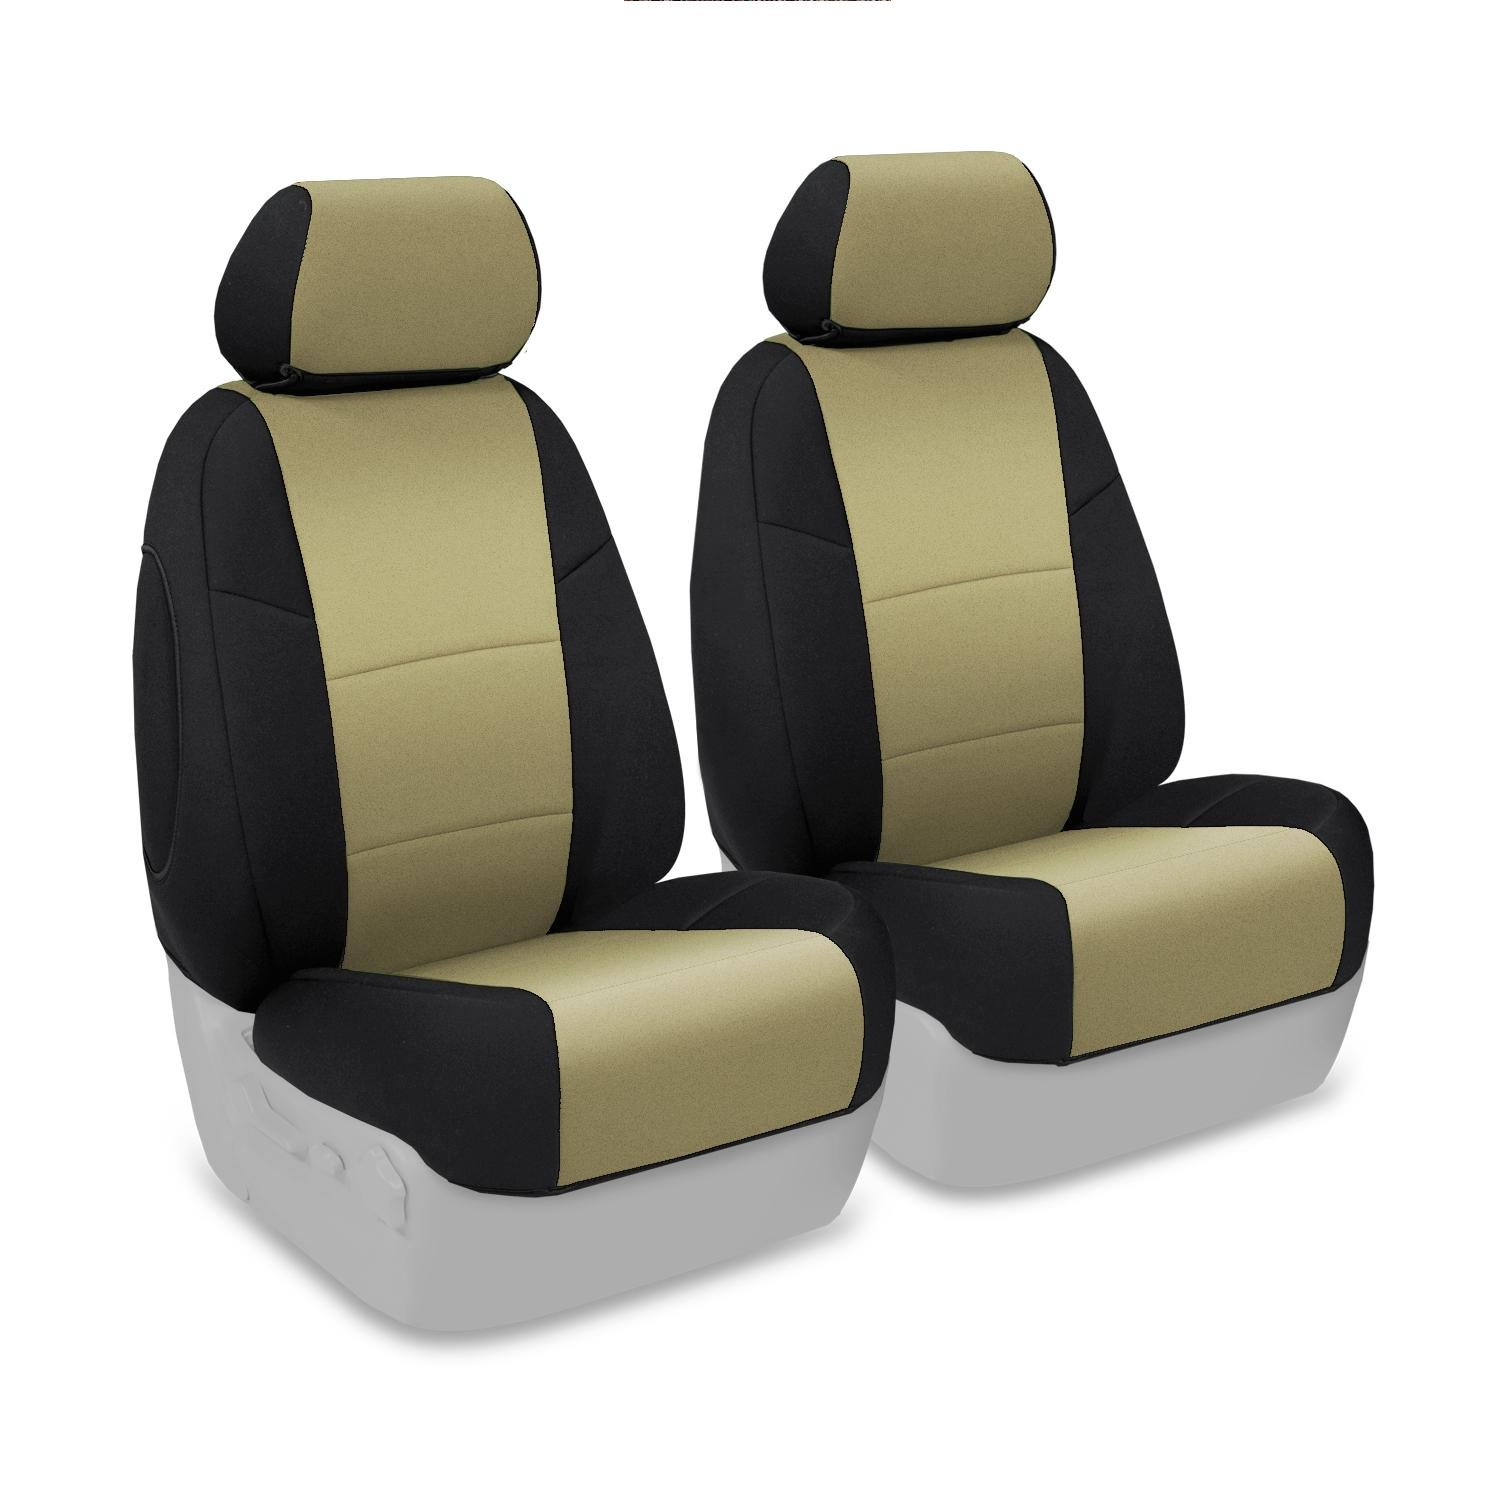 CSC2A5CH9492 Coverking Custom Fit Front 50//50 Bucket Seat Cover for Select Chevrolet Malibu Models Tan with Black Sides Neosupreme